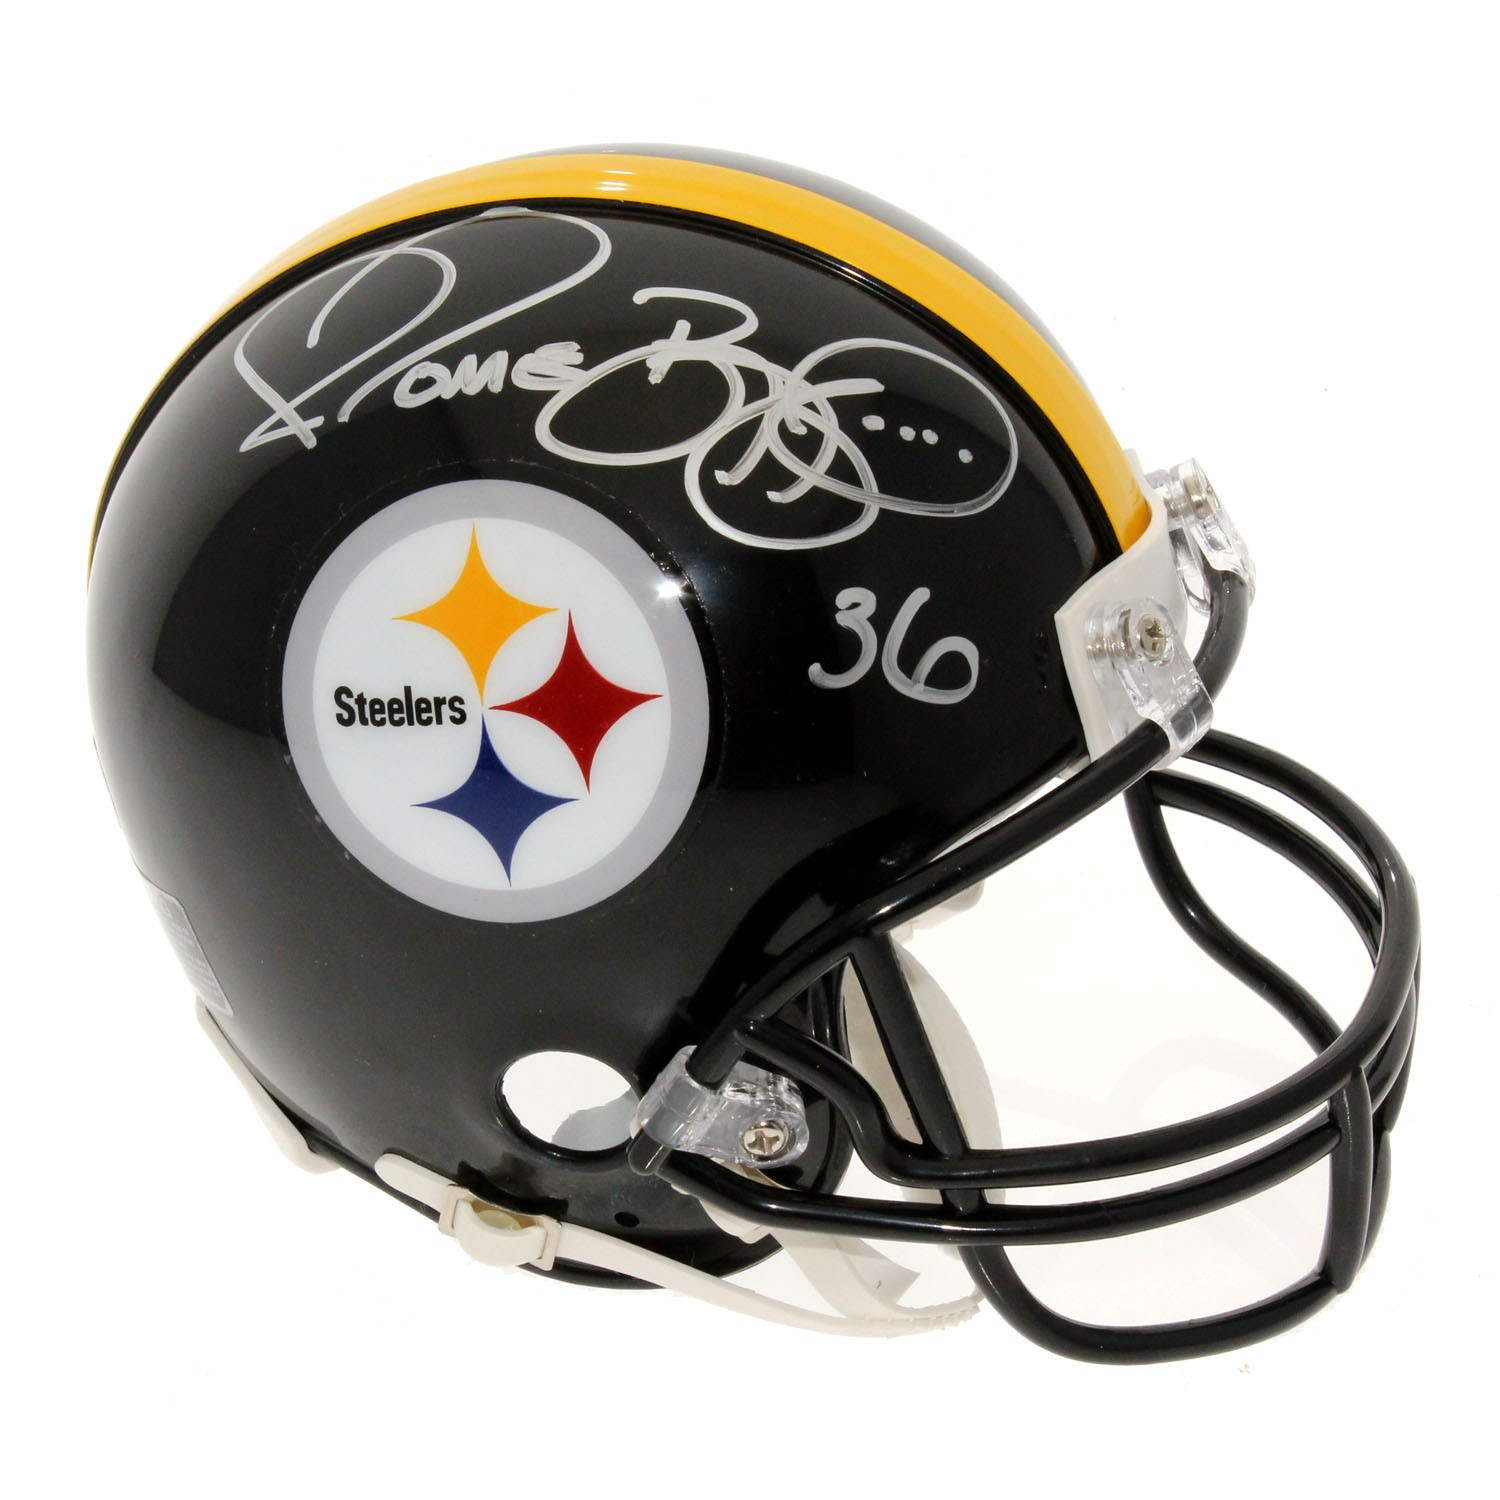 226c64d4cfa Jerome Bettis Autographed Signed Pittsburgh Steelers Mini Helmet - PSA/DNA  Certified Authentic